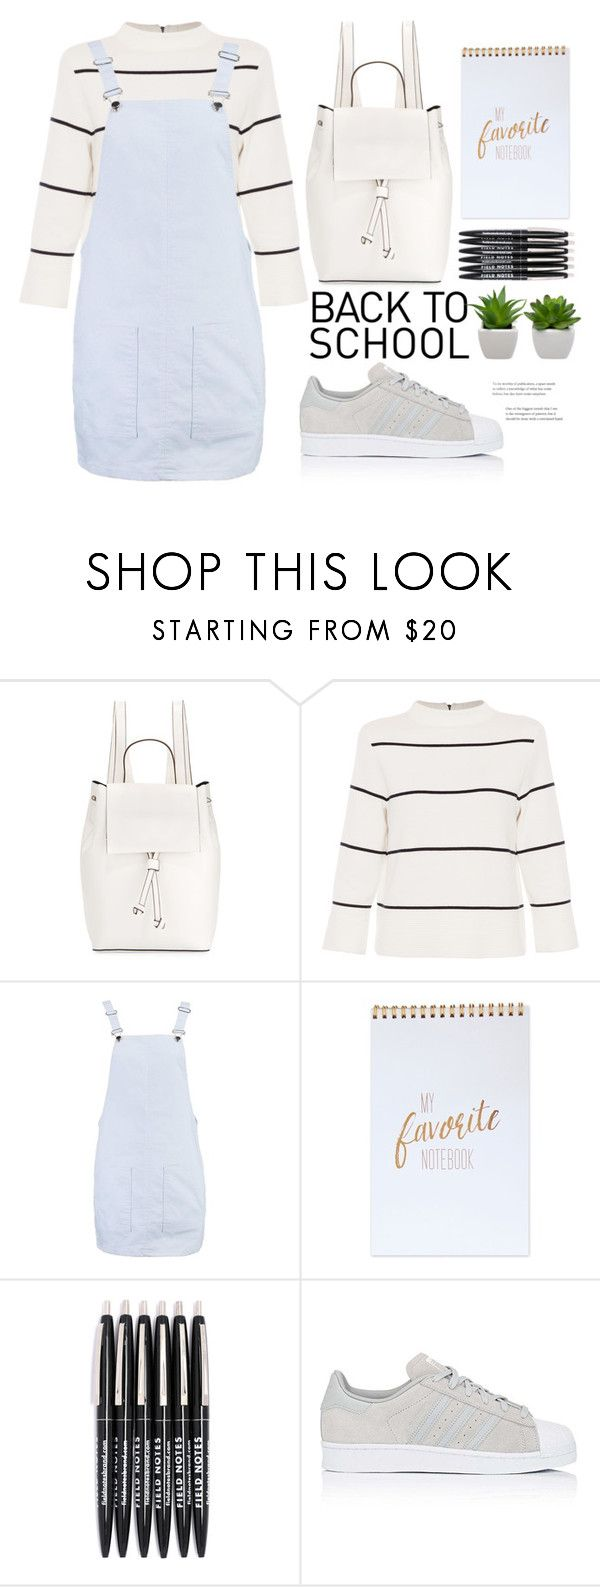 """""""back to school shopping"""" by mycherryblossom ❤ liked on Polyvore featuring French Connection, L.K.Bennett, Boohoo, adidas and BackToSchool"""